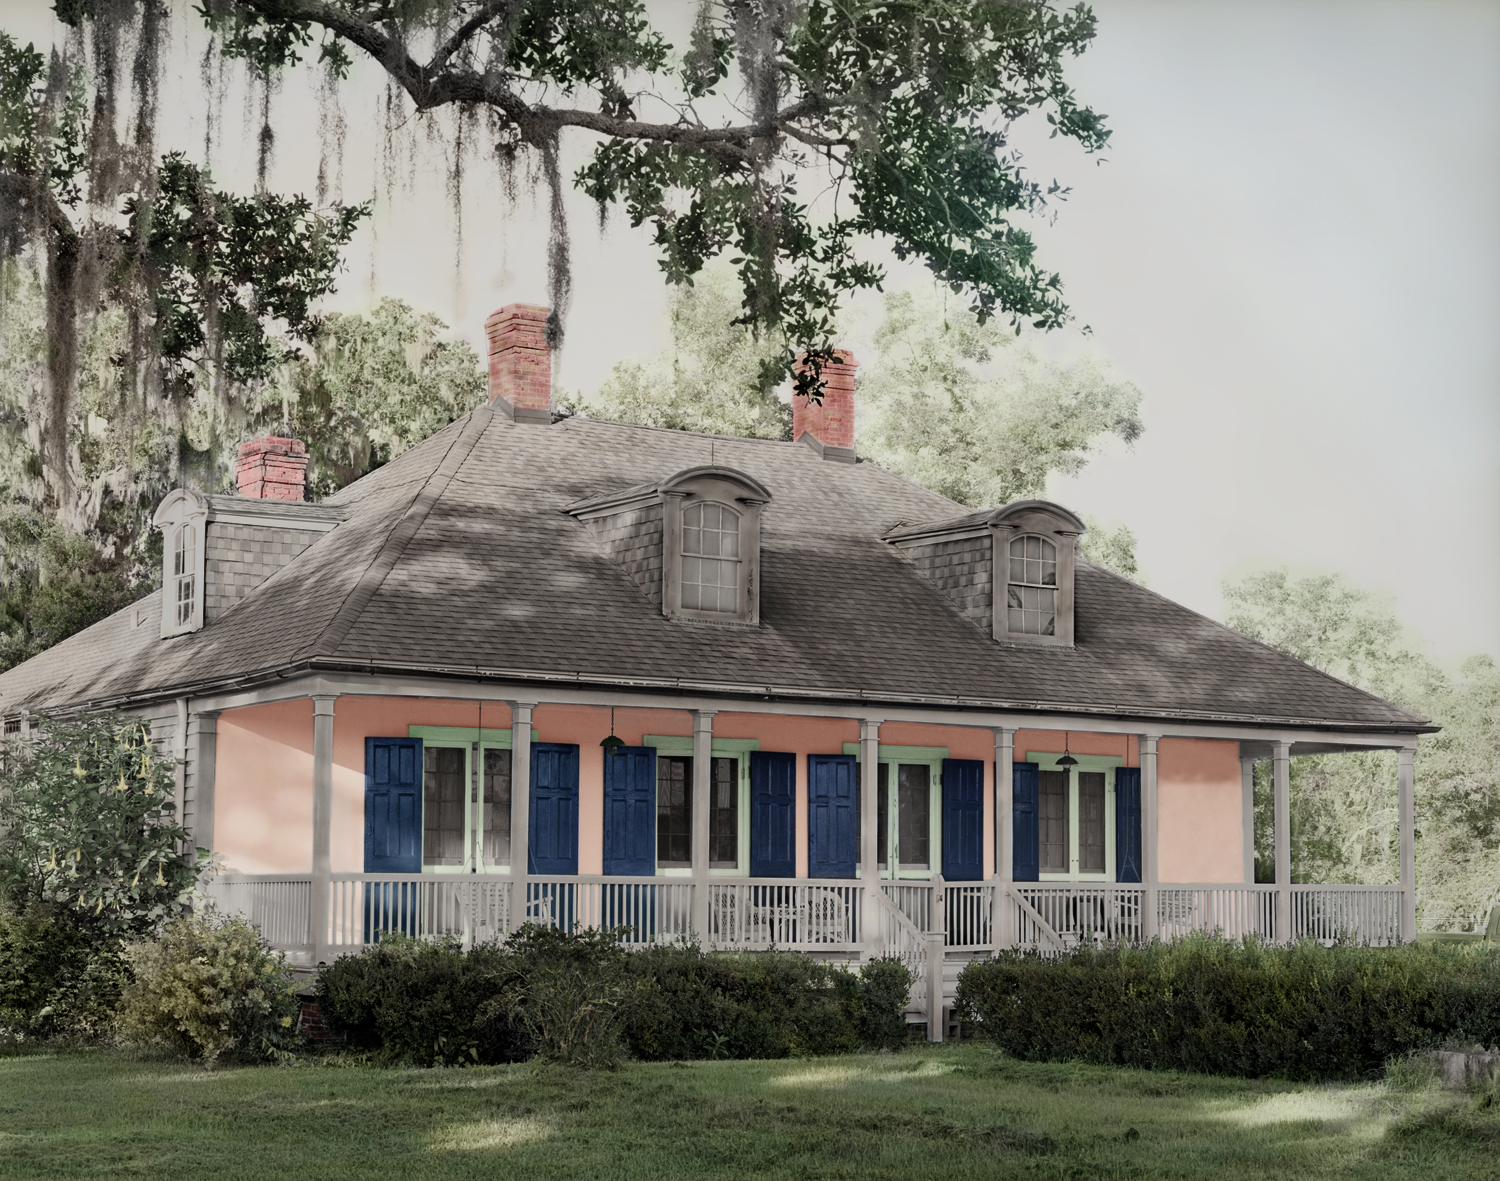 Three-room-across Creole-style house design of 1777.